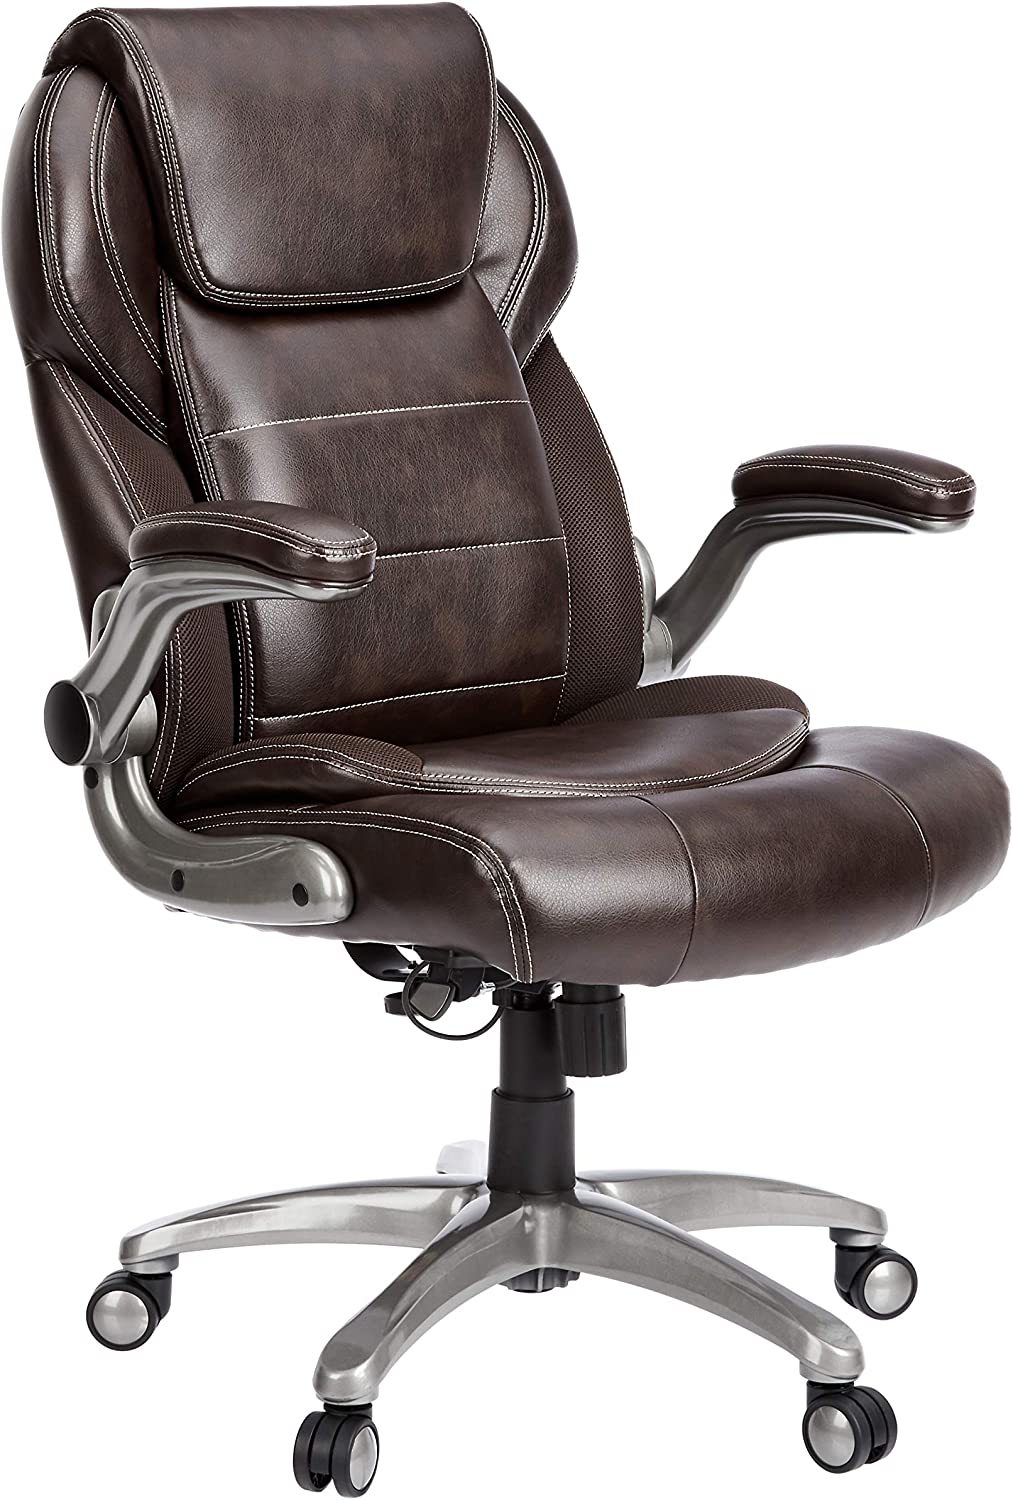 AmazonCommercial Ergonomic High-Back Leather Executive Chair with Flip-Up Arms and Lumbar Support, Brown